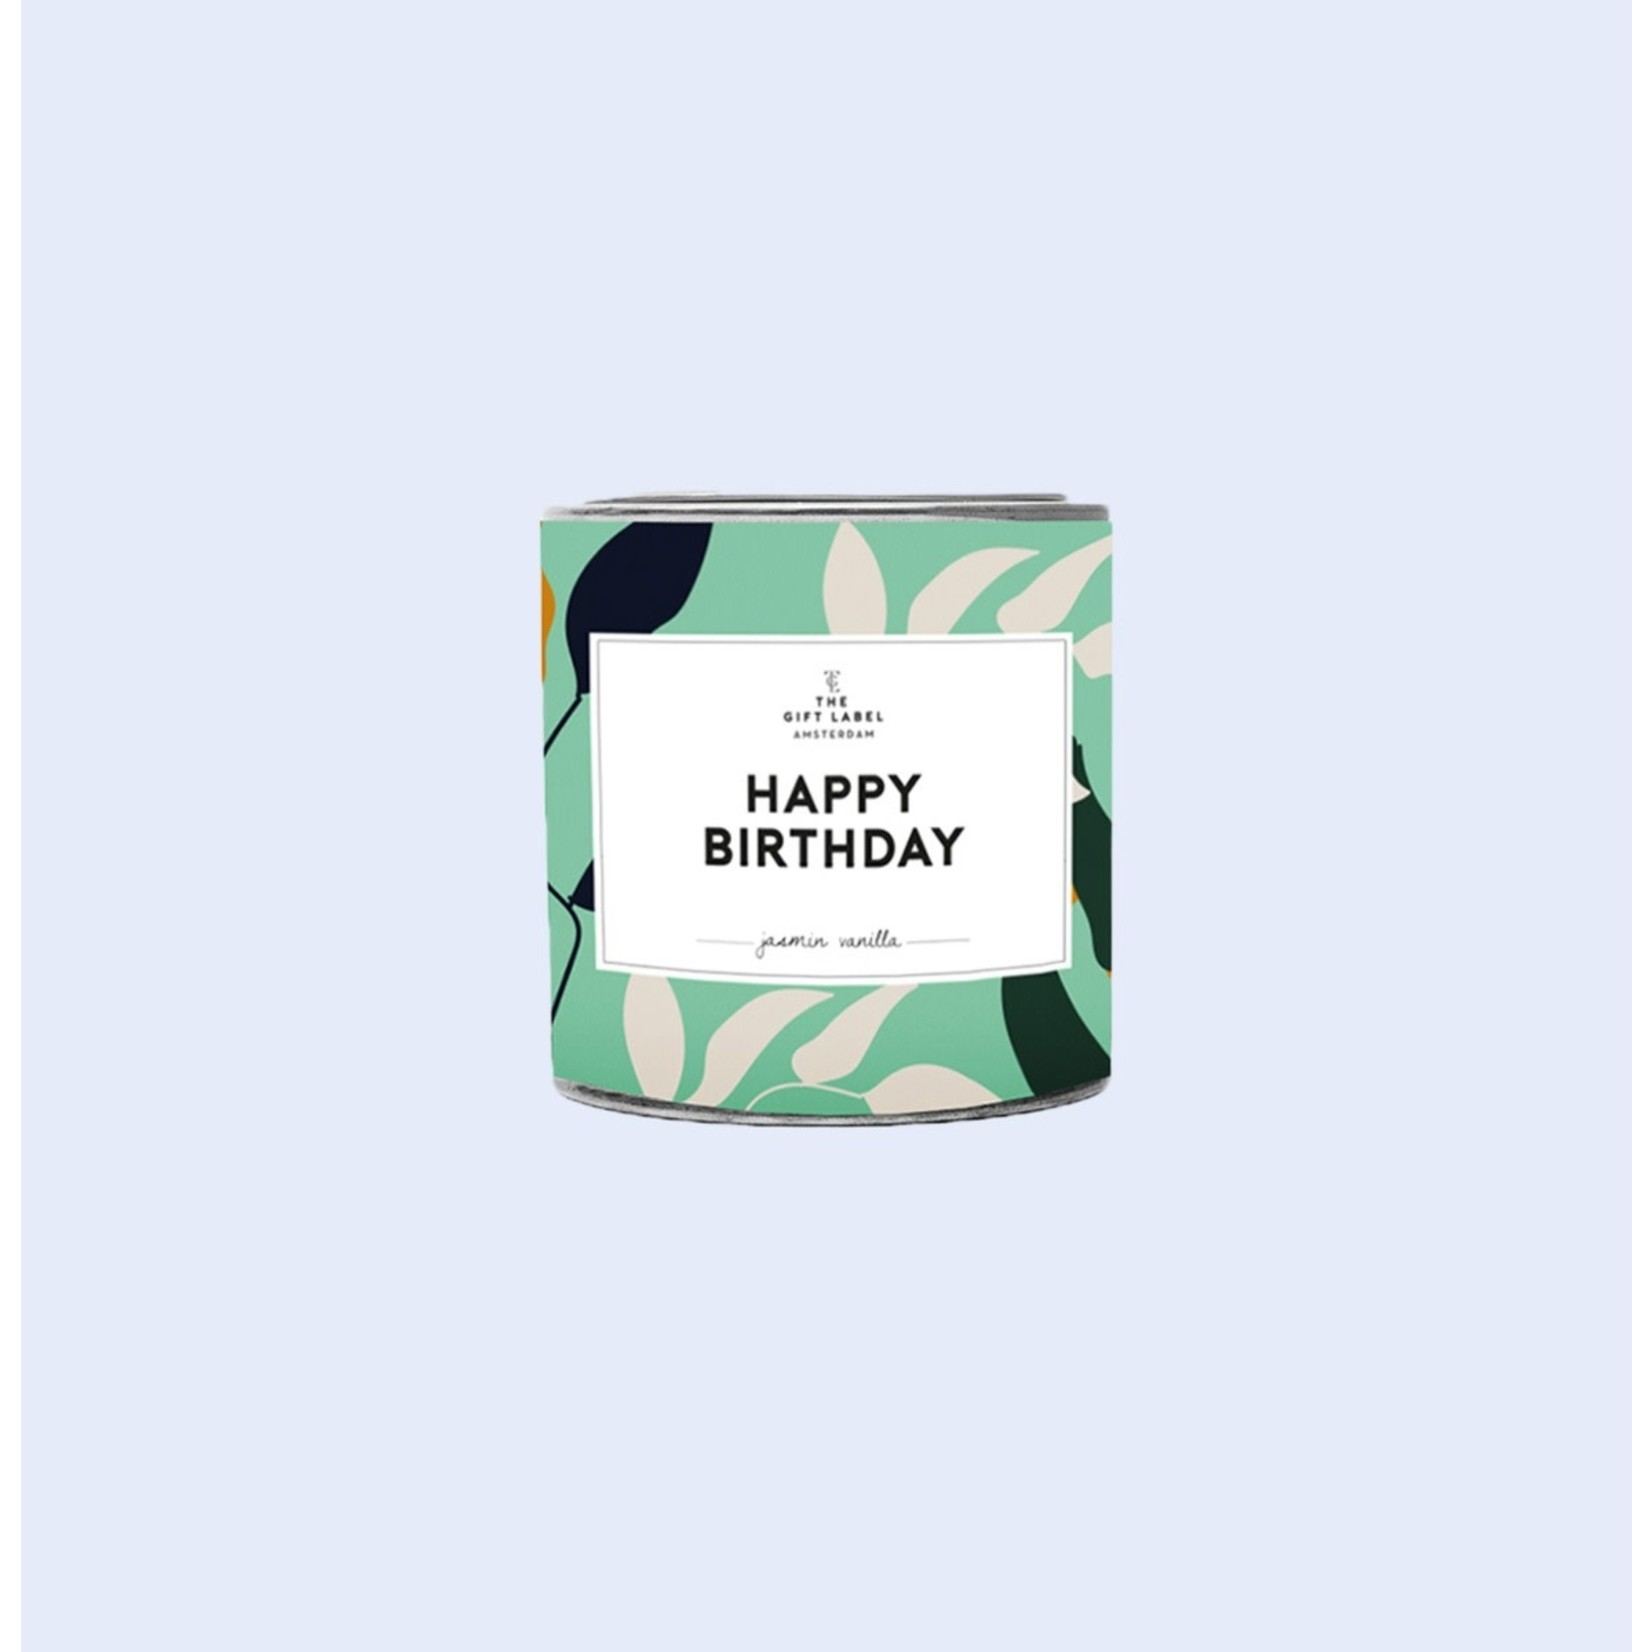 The Gift Label The Gift Label   Tin Candle 90g   Happy Birthday